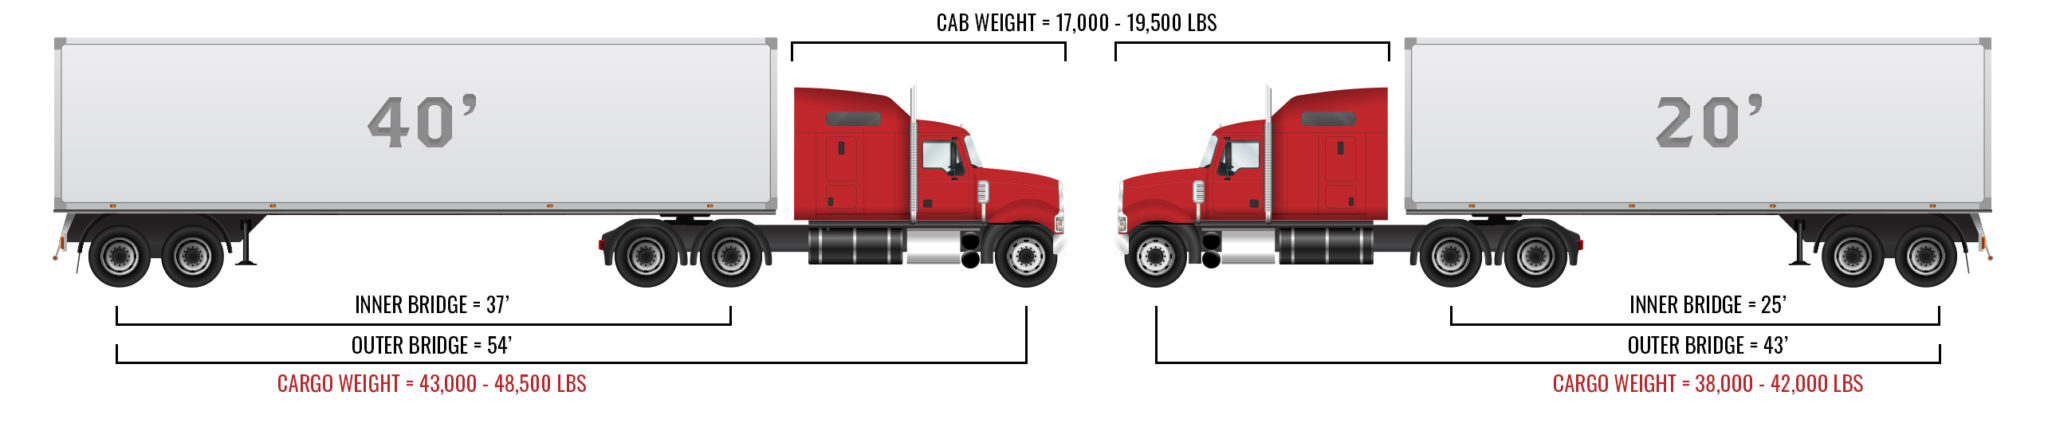 Cargo Weight Guide - WTXpress